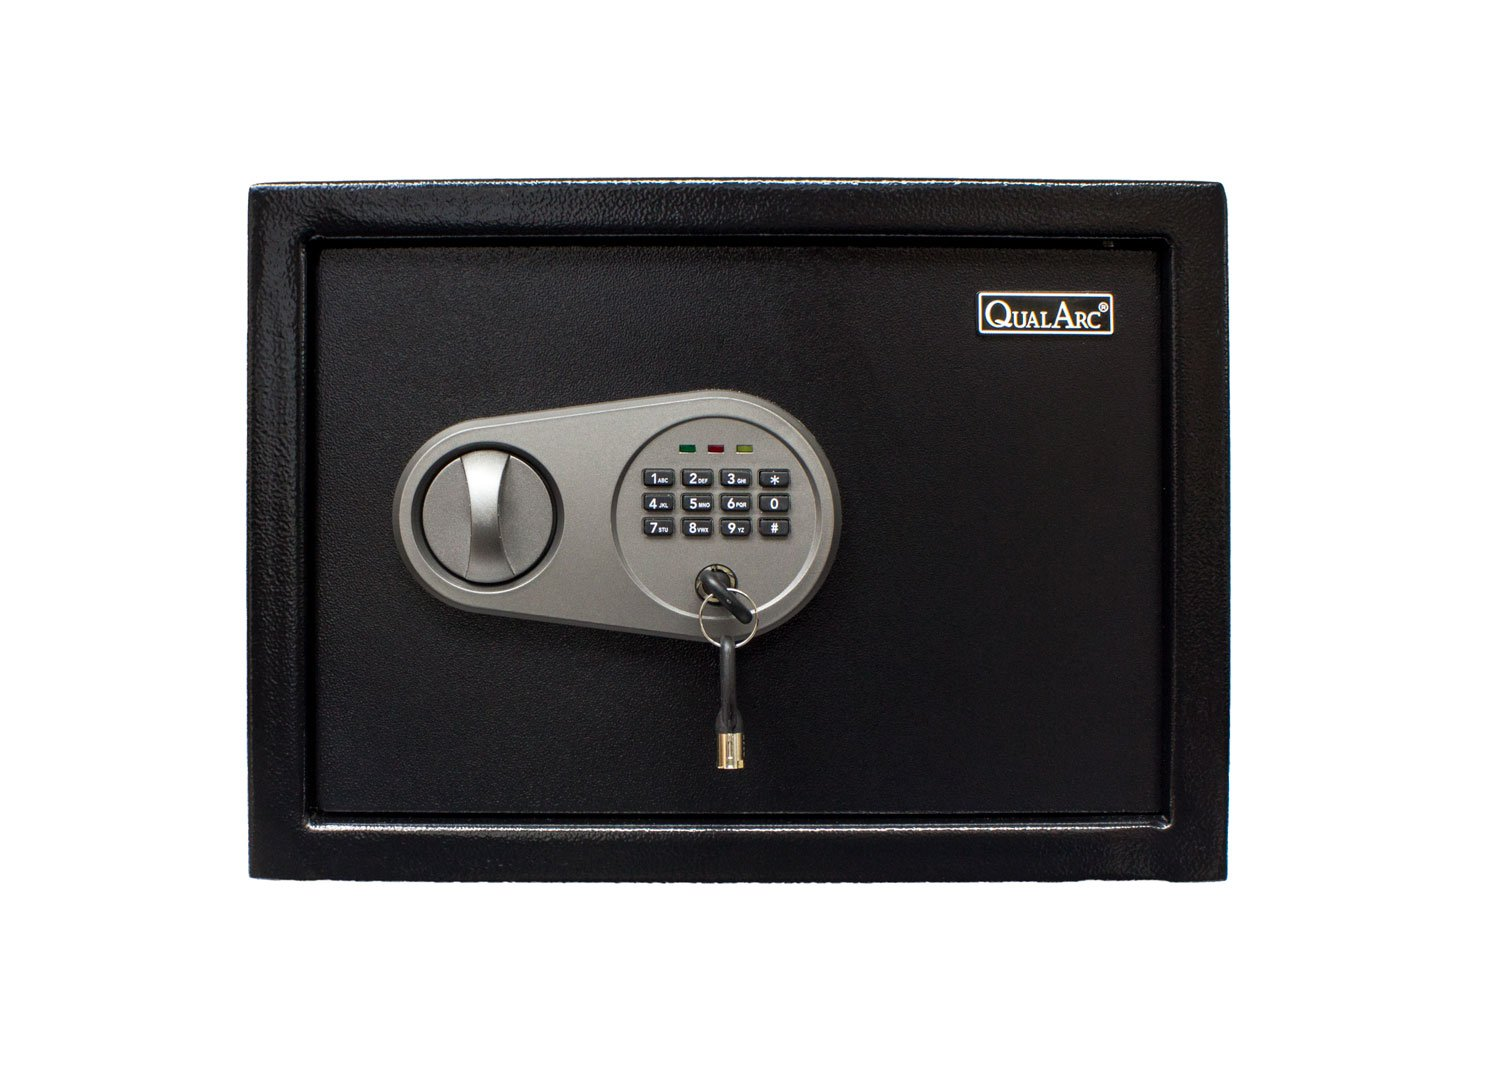 Qualarc NOCH-25EL Electronic Digital Home & Office Security Solid Steel Safe with Keypad Lock